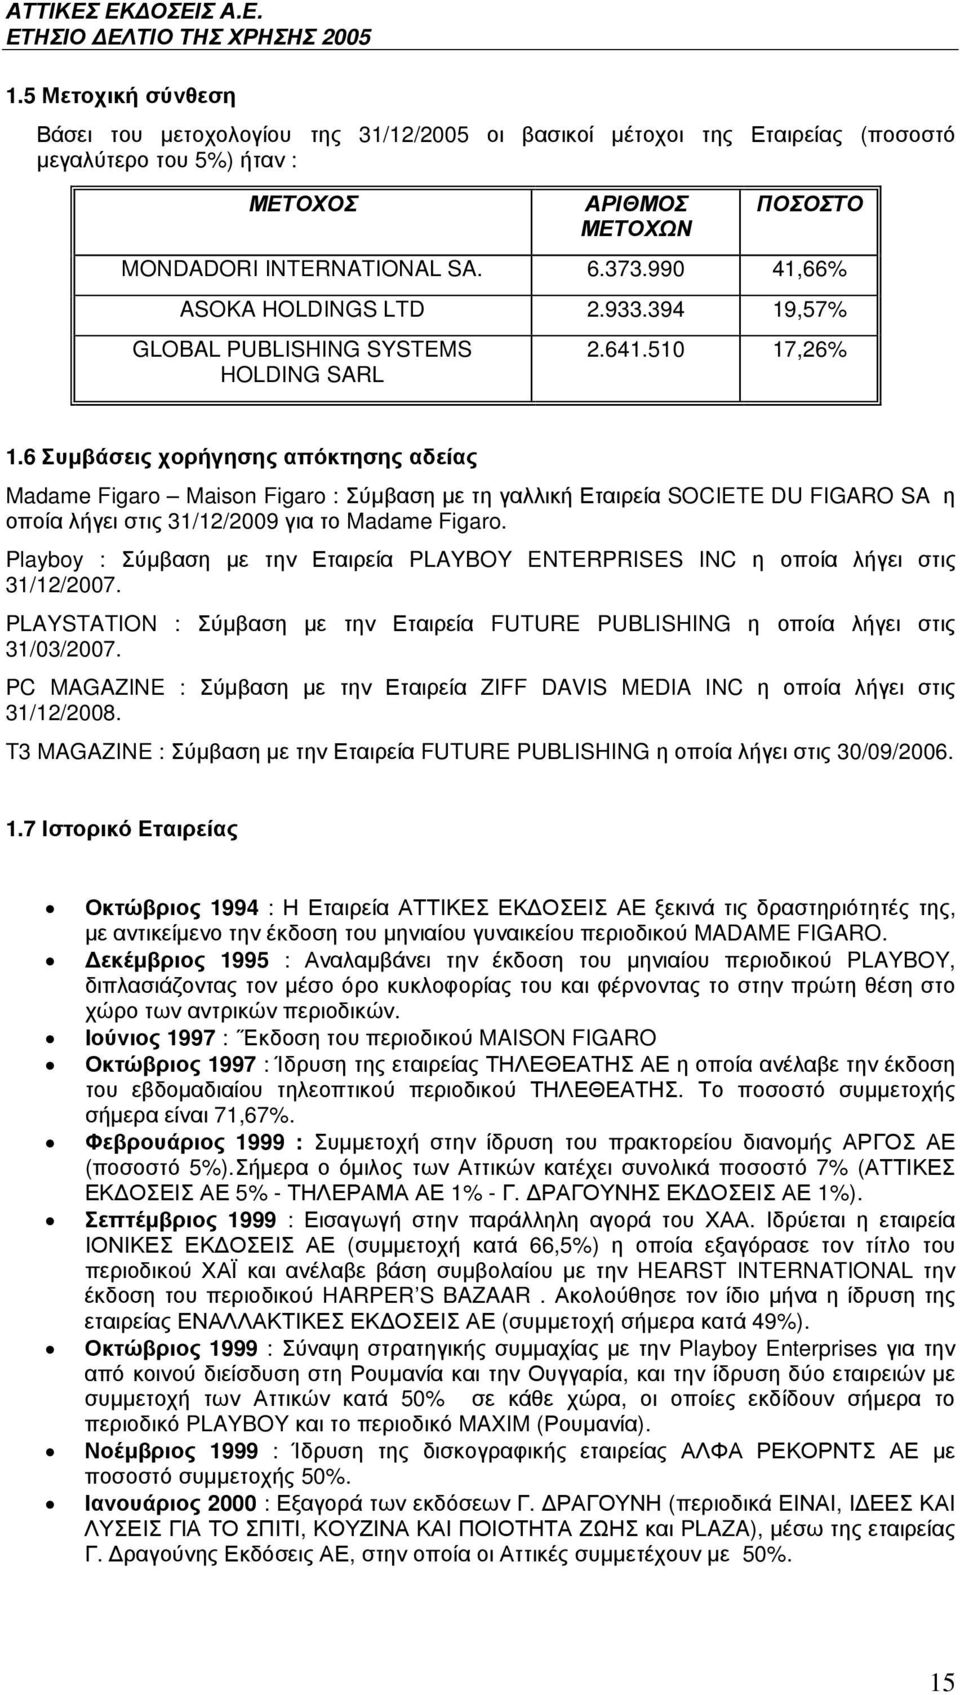 PLAYBOY ENTERPRISES INC FUTURE PUBLISHING ZIFF DAVIS MEDIA INC T3 MAGAZINE : *) FUTURE PUBLISHING 30/09/2006. 1.7 %(*) (%,# *.+%(# 1994 : &! ' (, ( (* MADAME FIGARO.